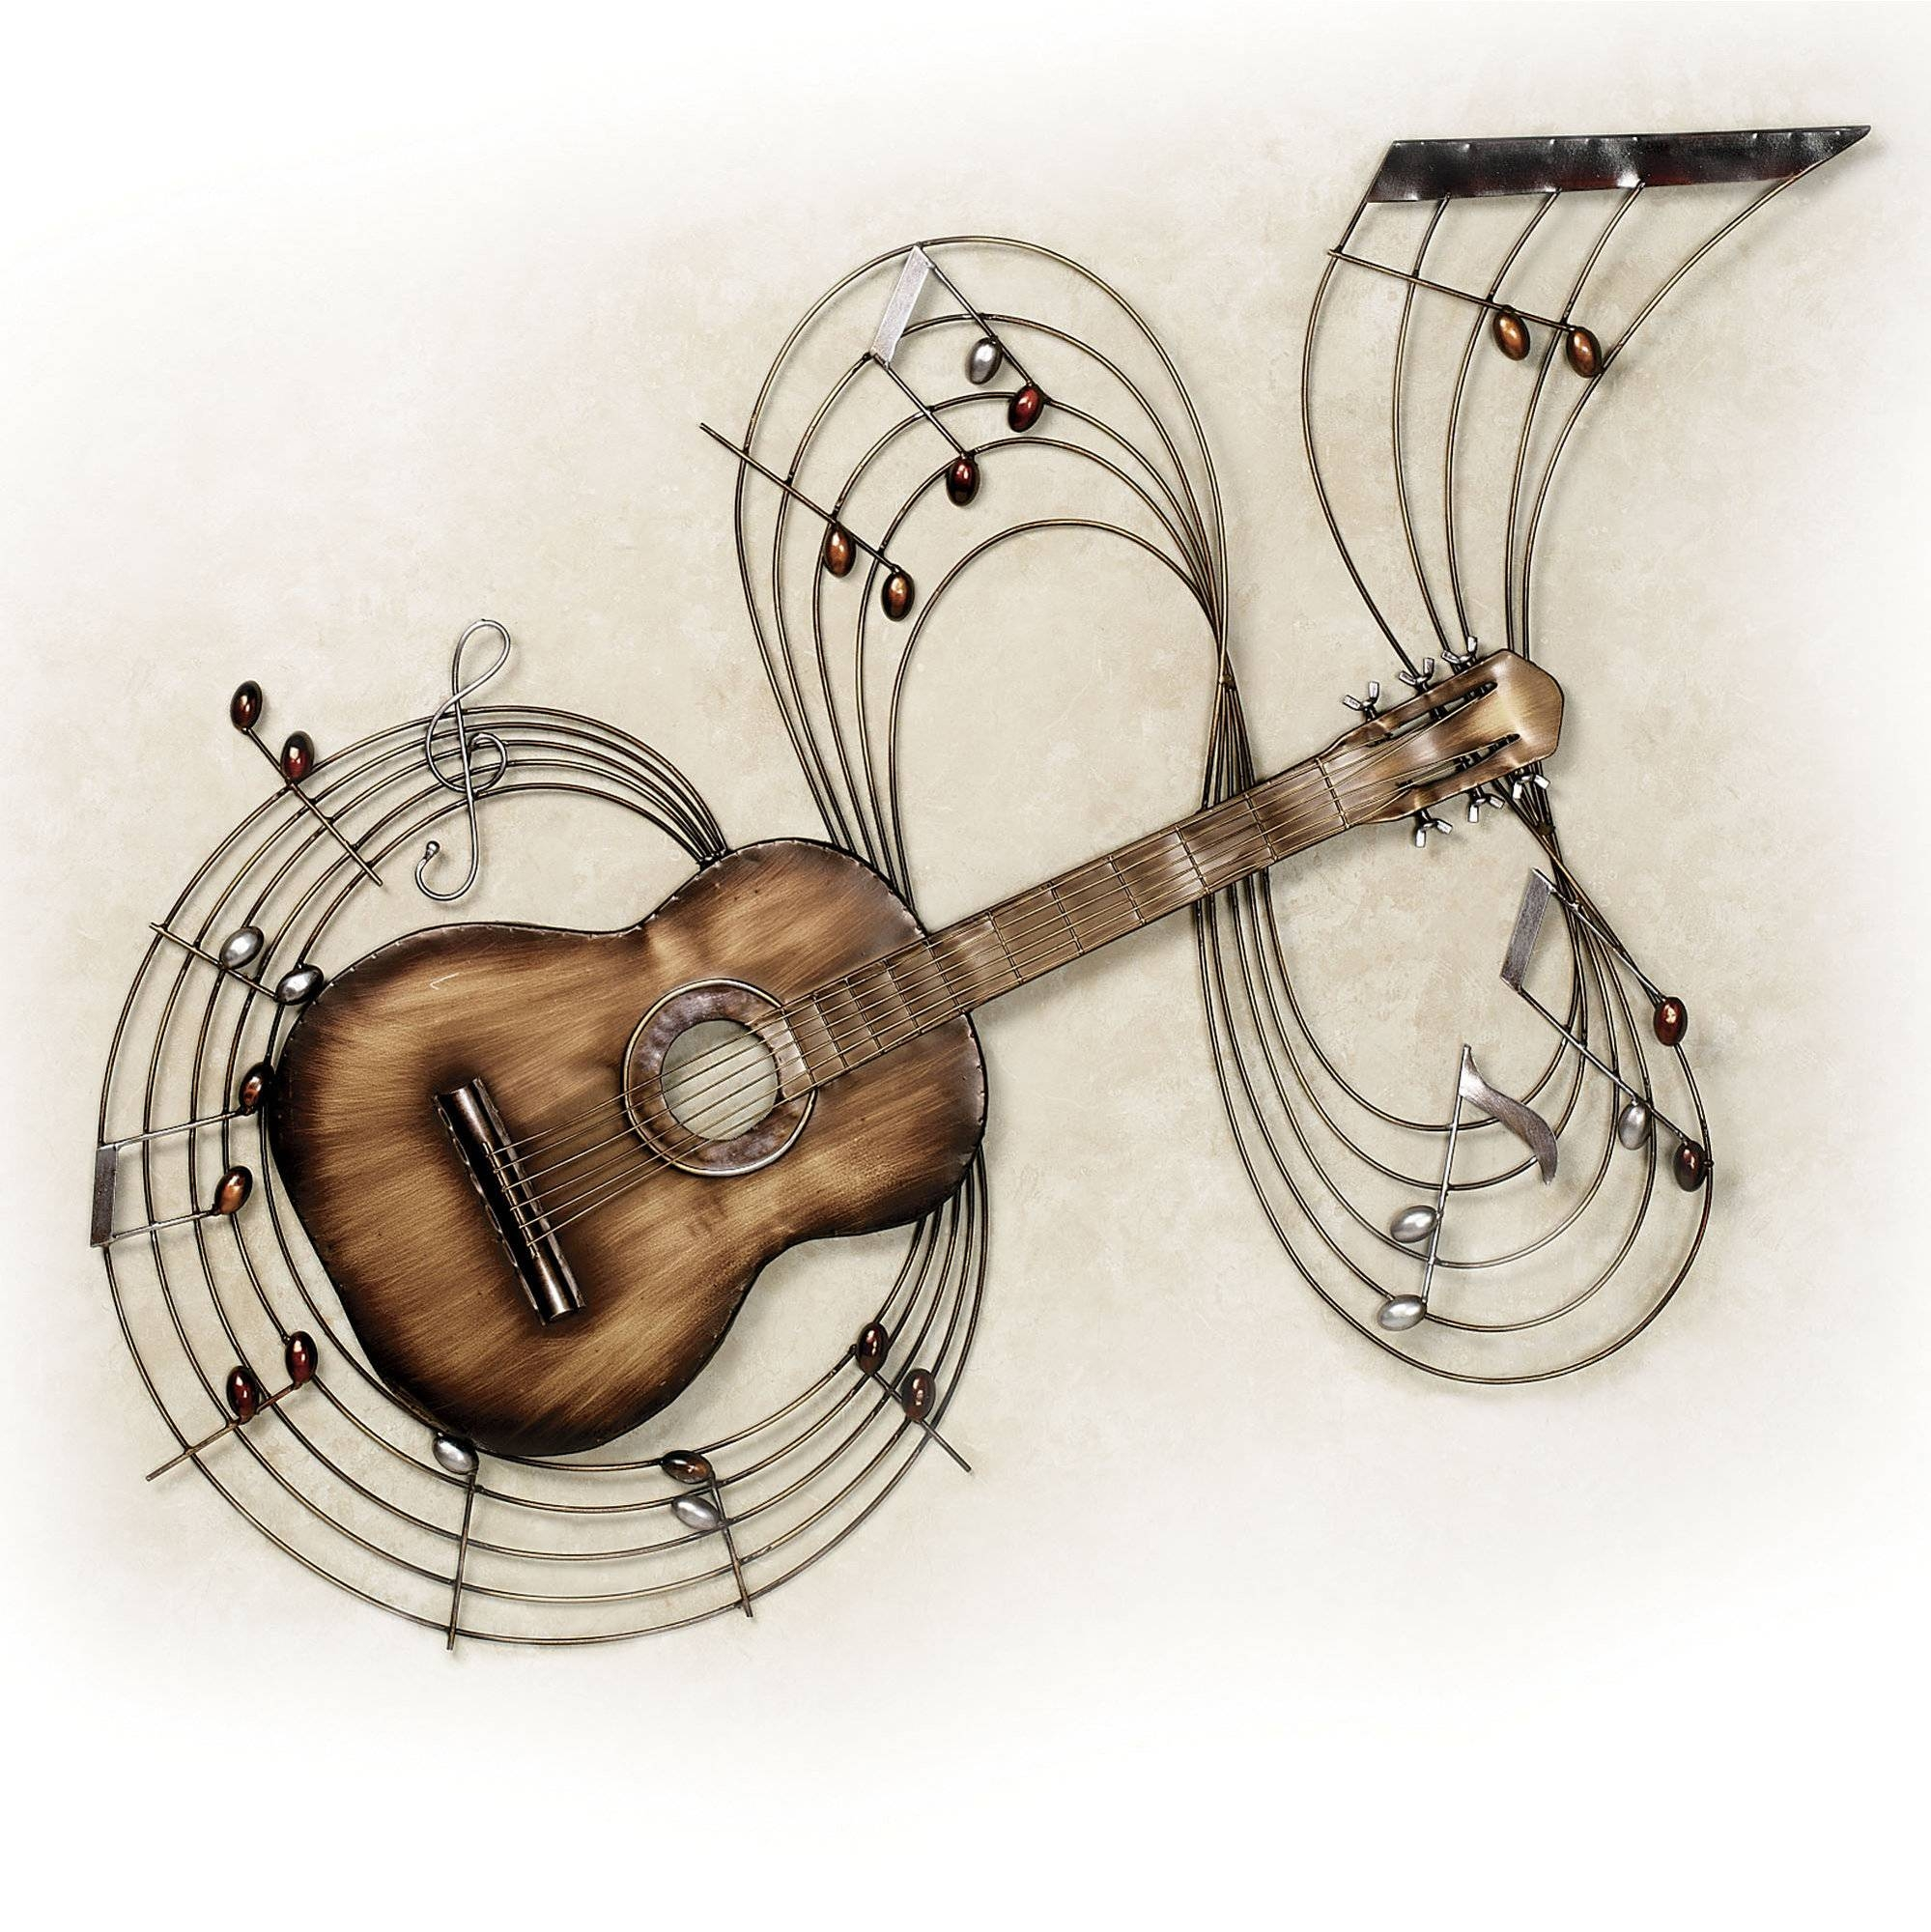 Wall Art Design Ideas: Guitar Handmade Metal Wall Art Music Pertaining To Most Up To Date Handmade Metal Wall Art (View 15 of 20)